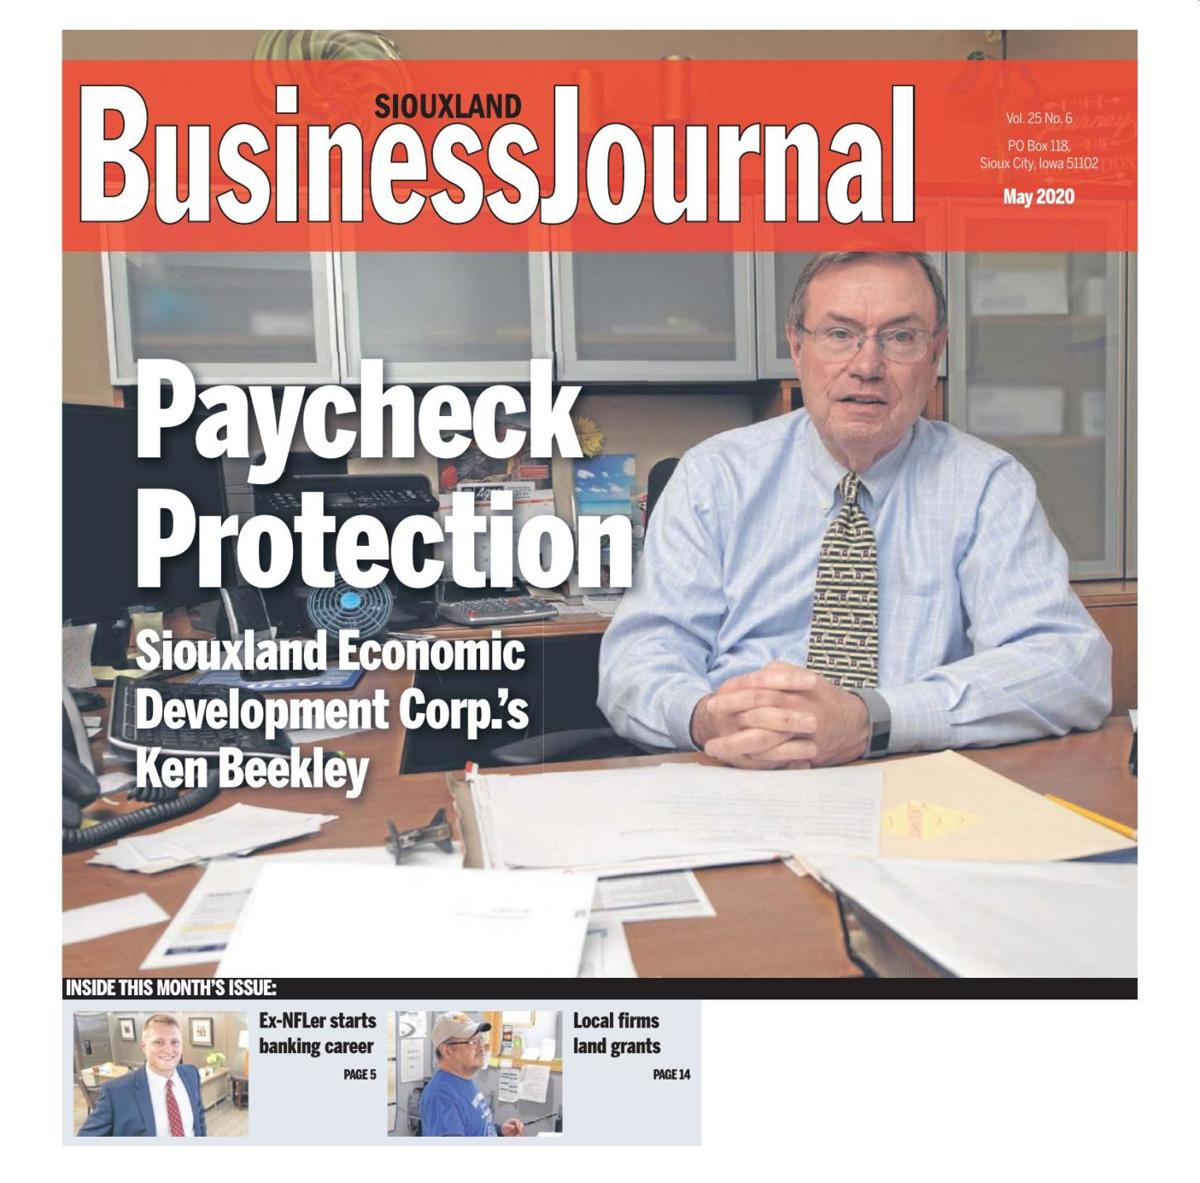 Business Journal - May 2020